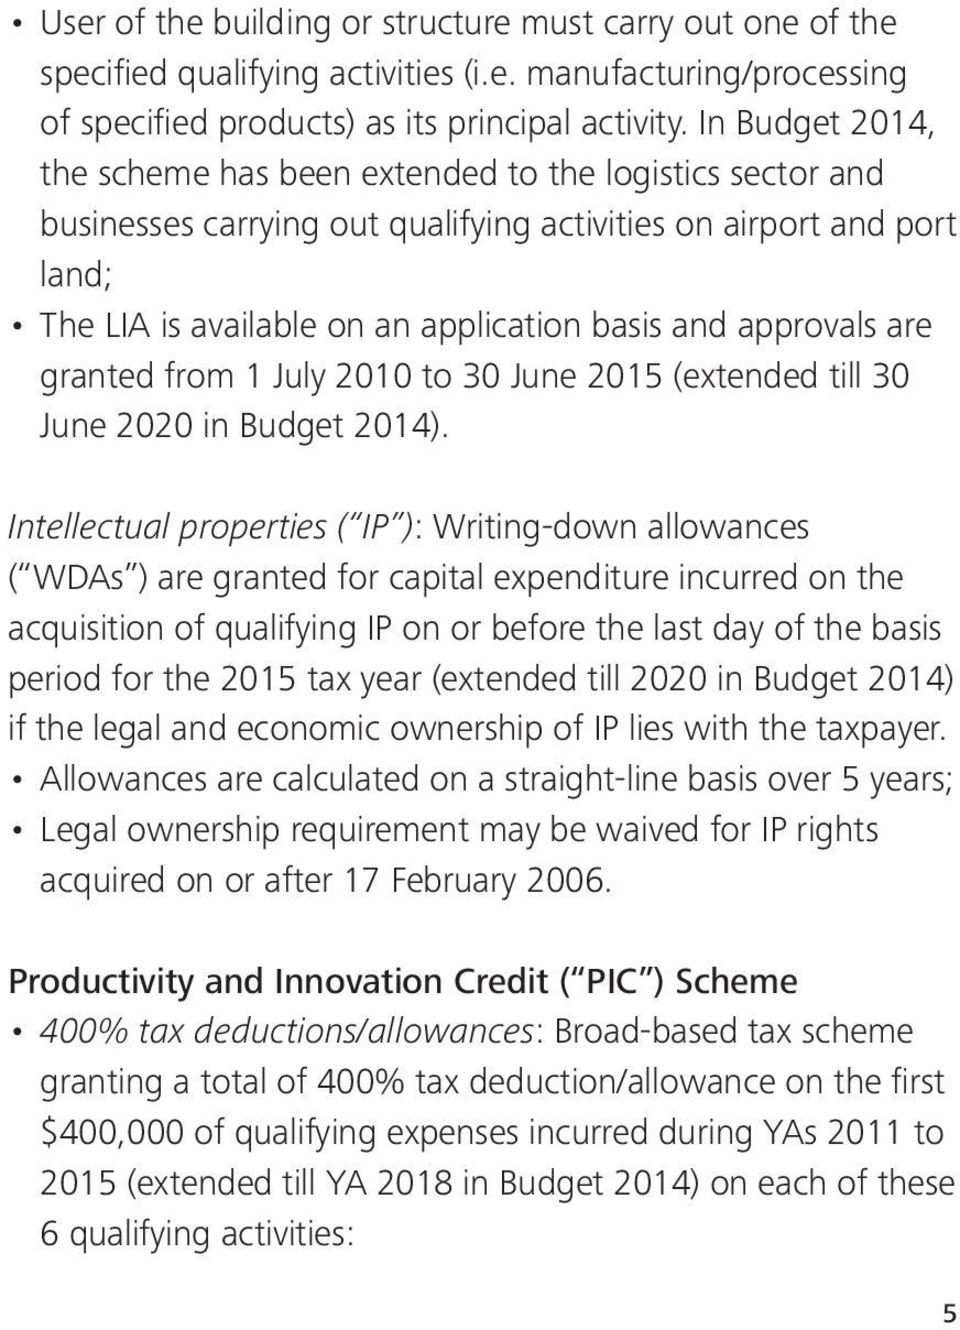 approvals are granted from 1 July 2010 to 30 June 2015 (extended till 30 June 2020 in Budget 2014).